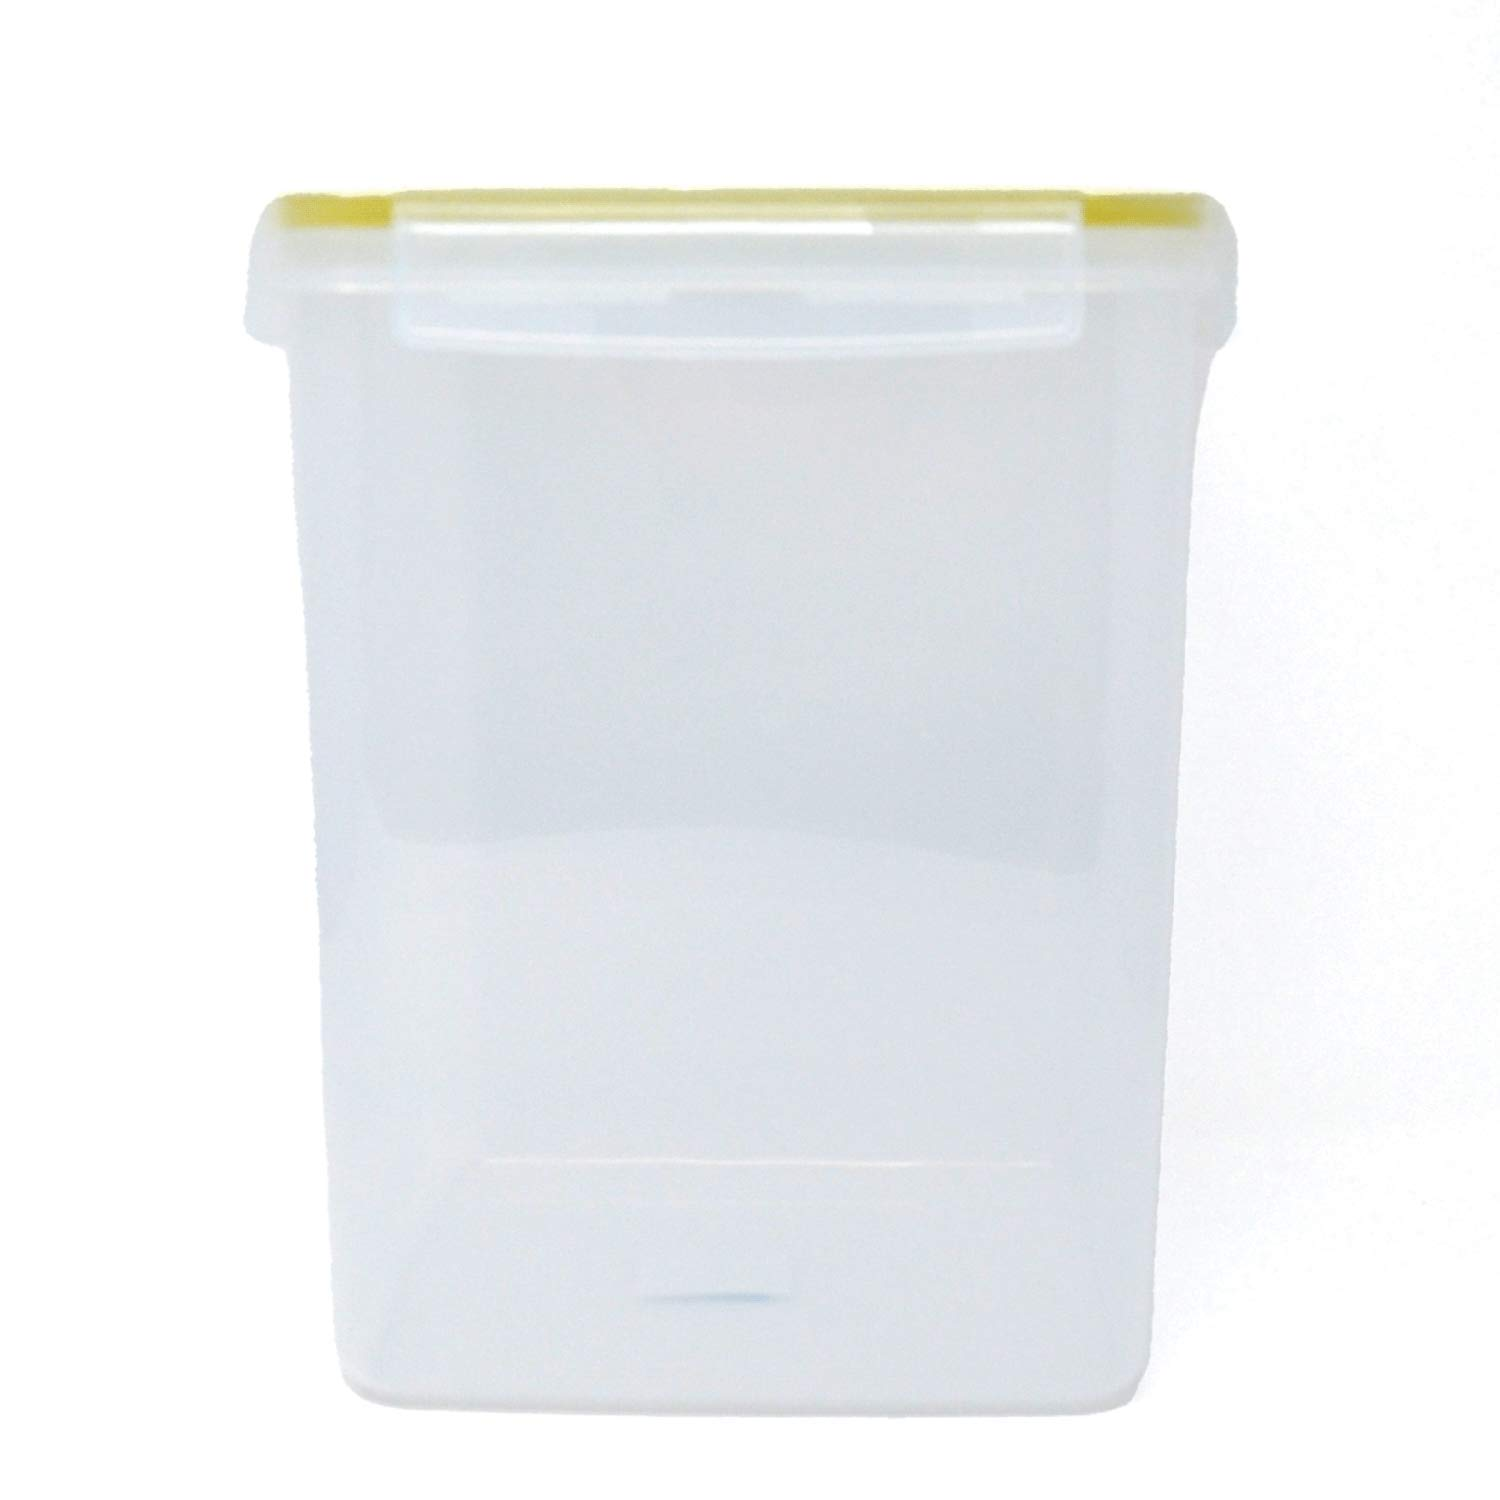 Kd Home Flour And Sugar Storage Containers Extra Large Original Airtight Canister For Sugar Flour Cereal Rice Baking Supplies Dry Food Storage Containers With Lids 175 Oz Buy Online In Aruba At